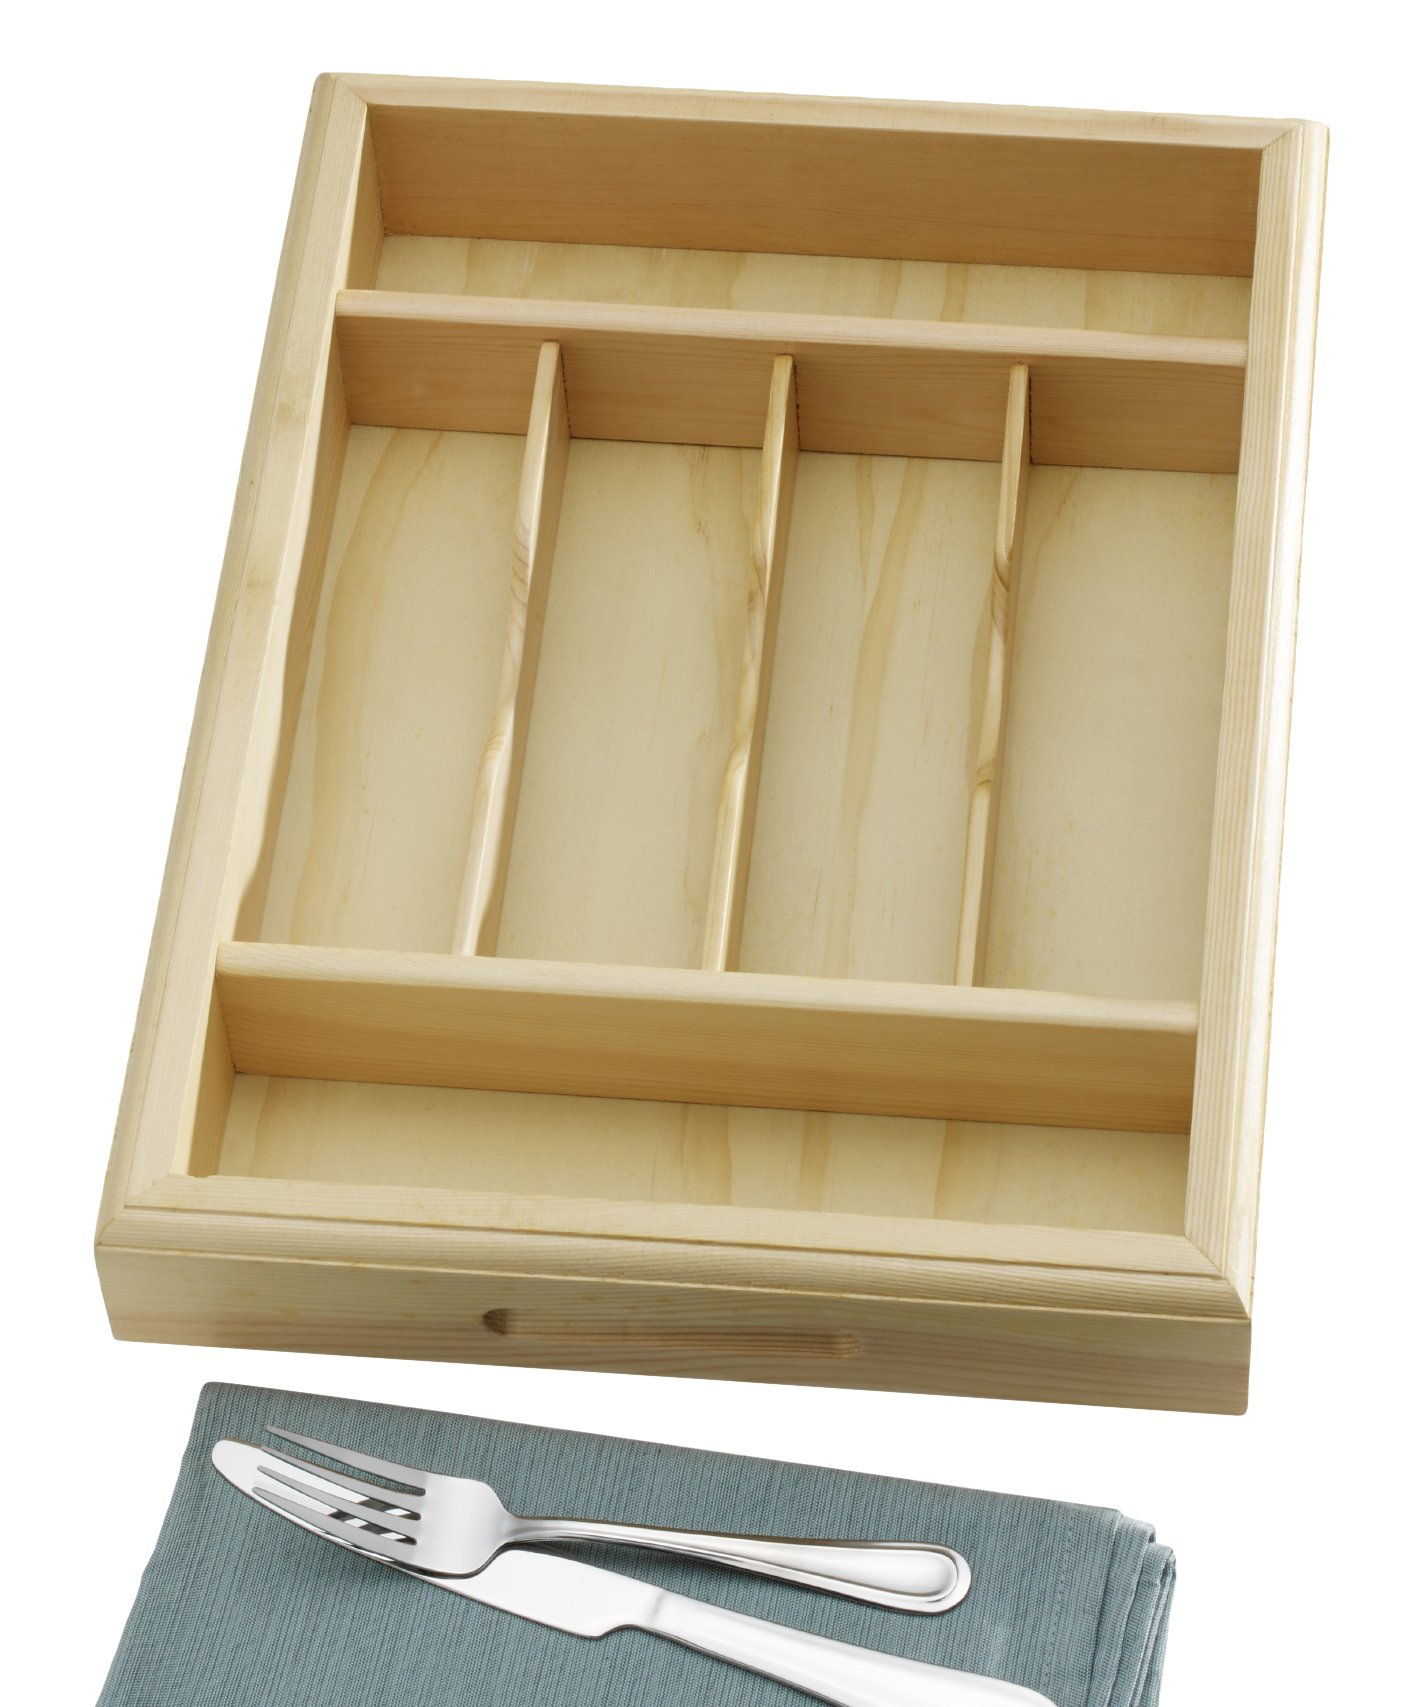 Towle Living 5183786 6 Slot Natural Deluxe Wood Caddy, Brown